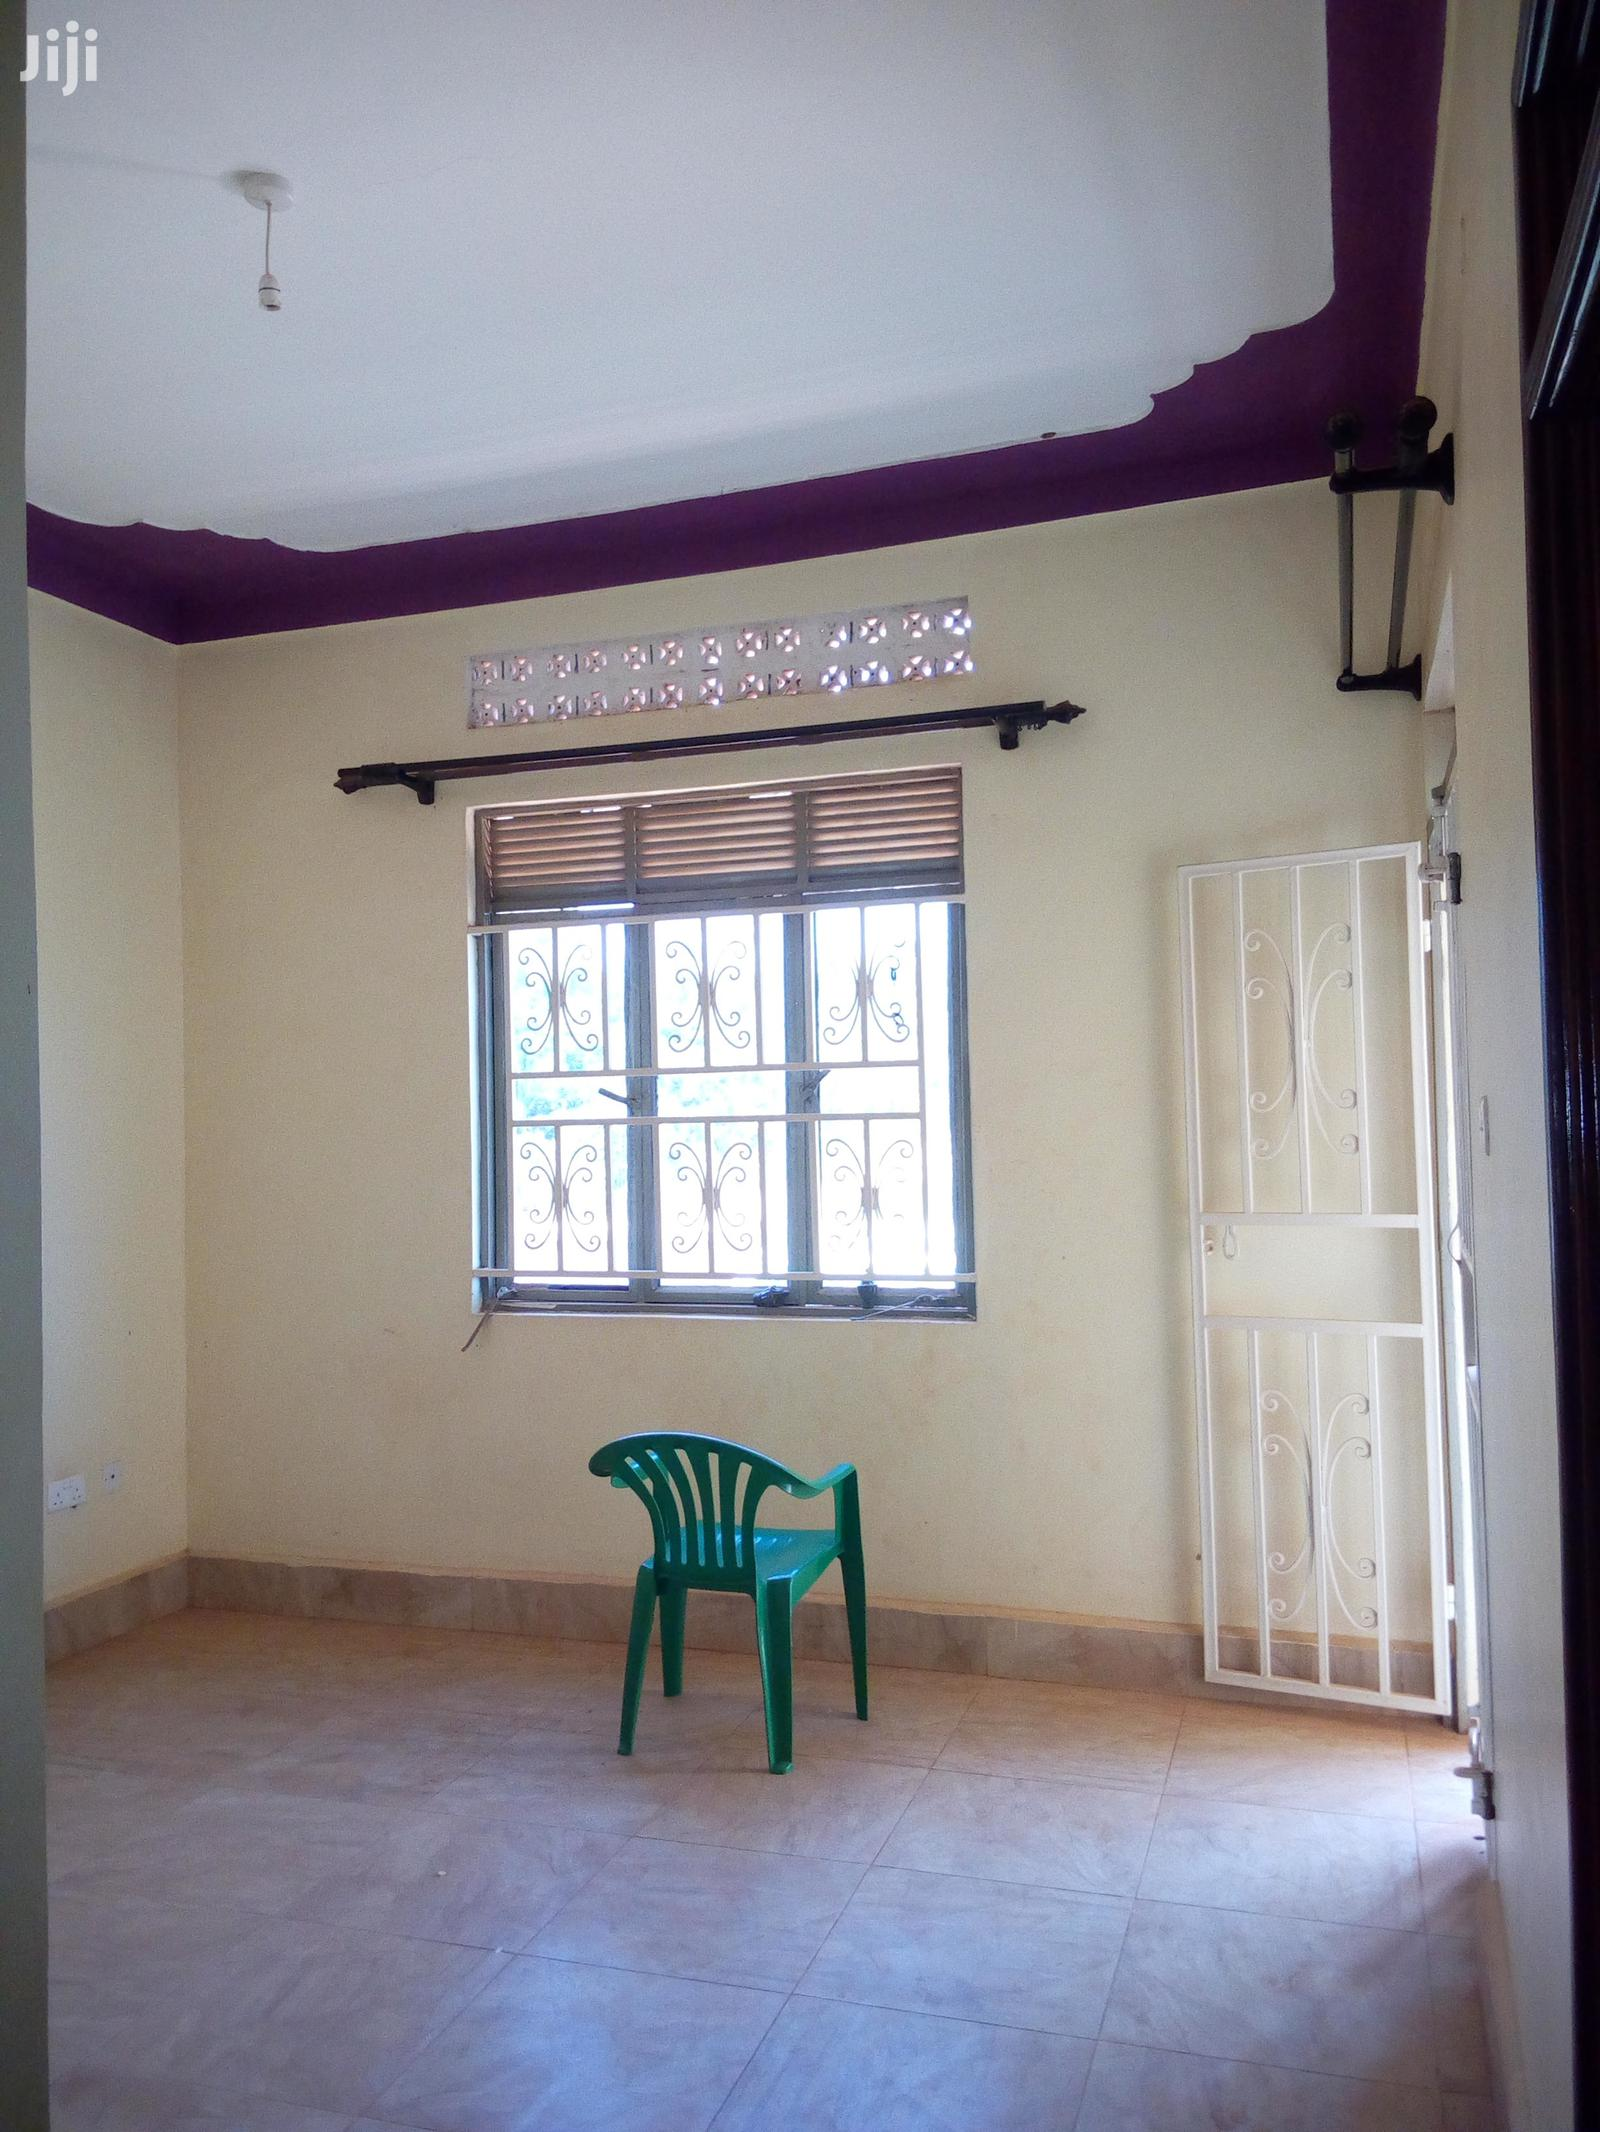 Kira Self Contained Double Room House For Rent | Houses & Apartments For Rent for sale in Kampala, Central Region, Uganda